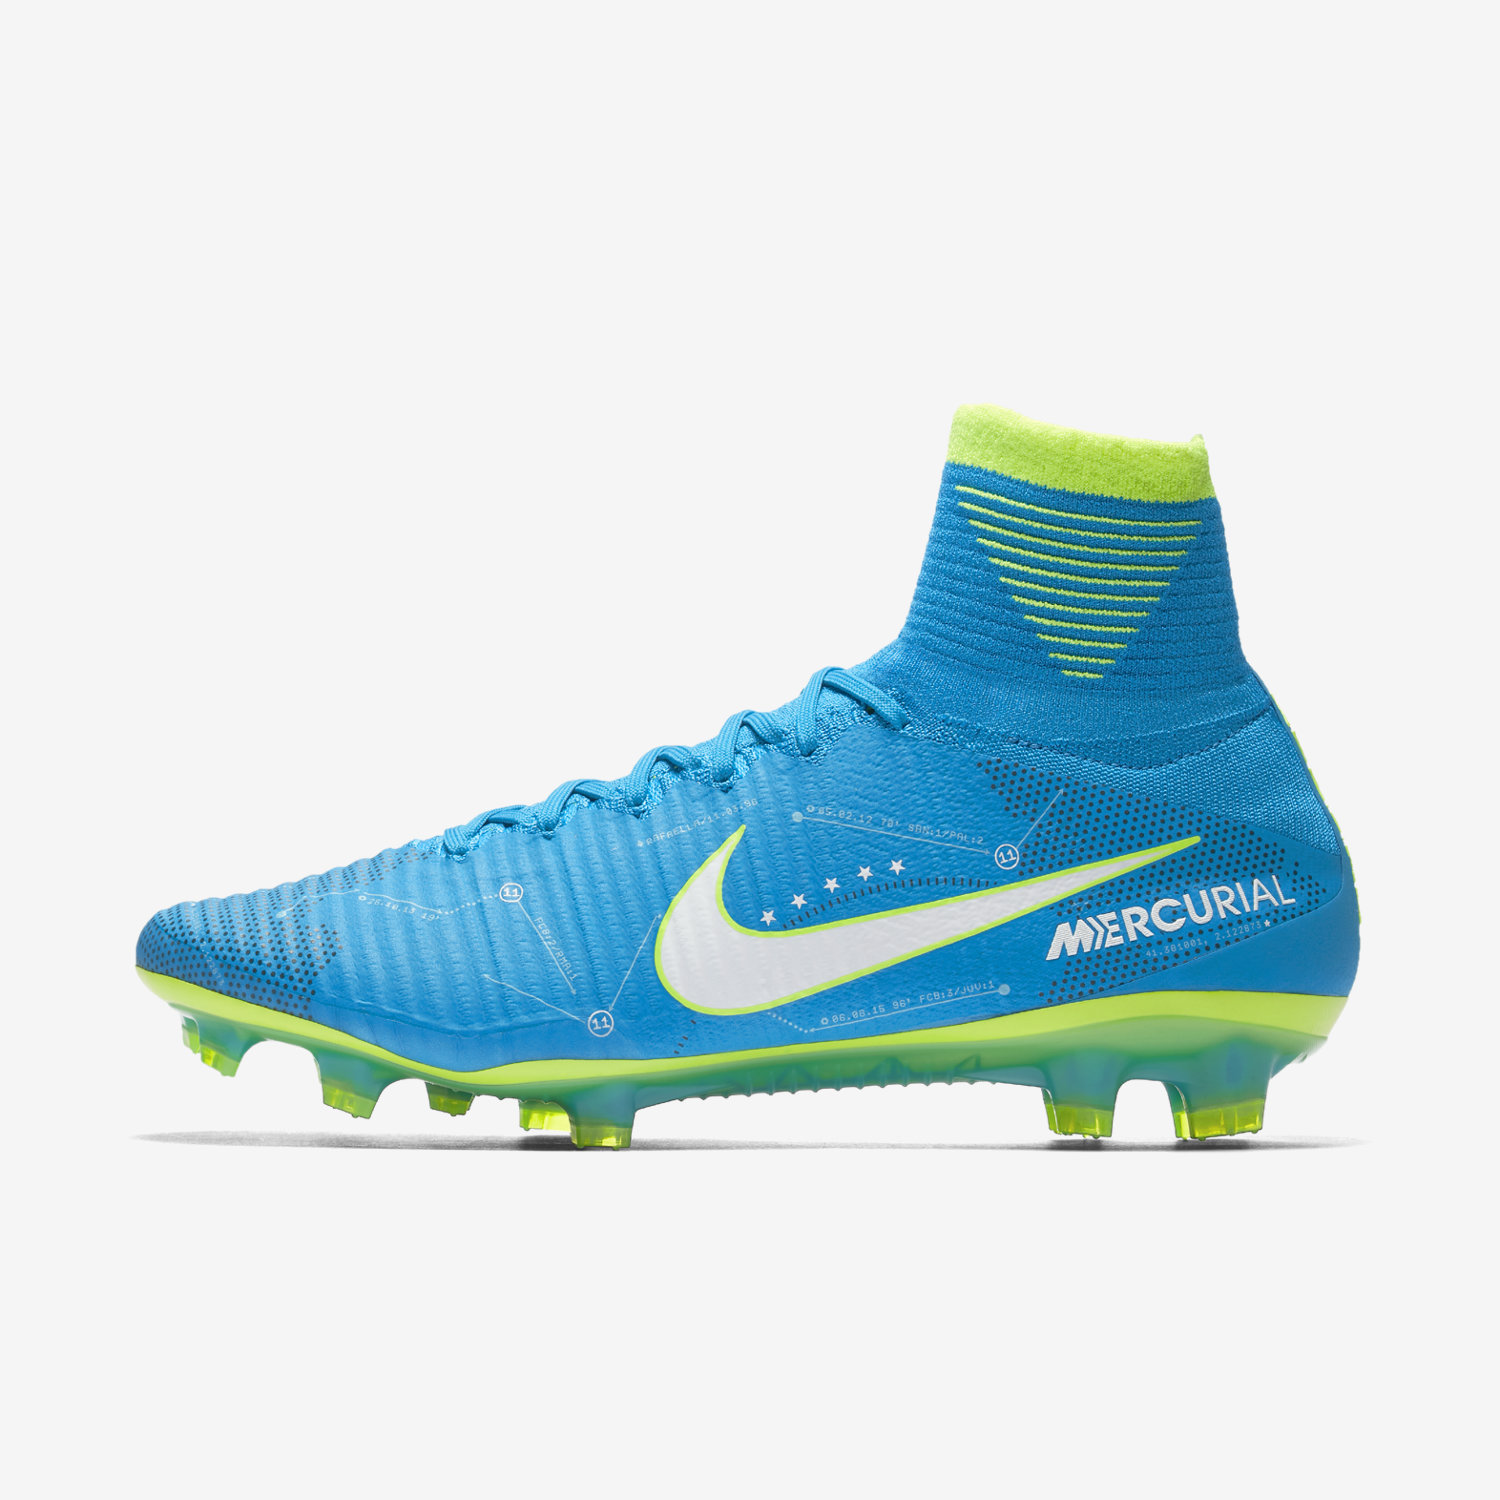 Nike Jr. Mercurial Superfly V Dynamic Fit Neymar FG - Girls Football Boots - Blue/White/Navy